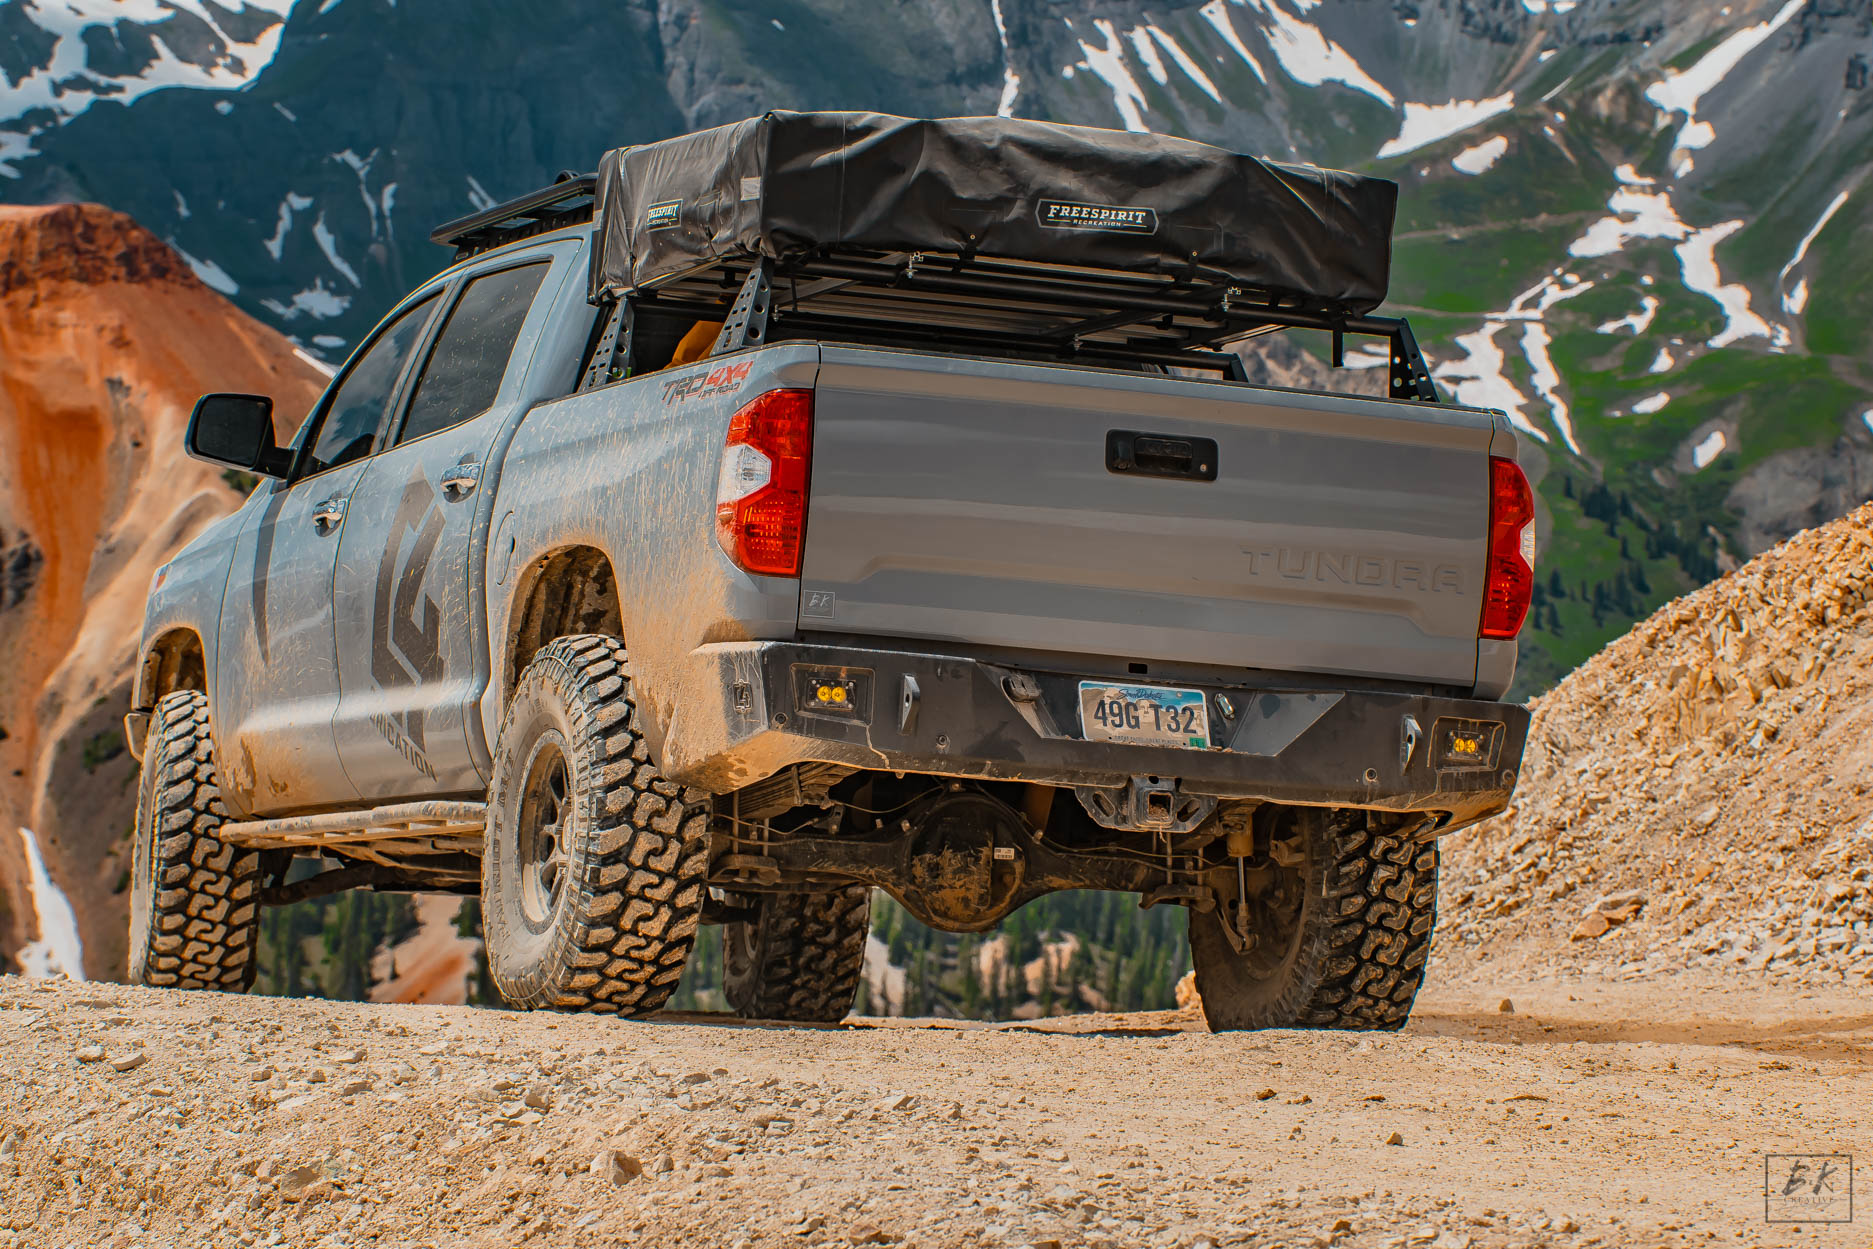 C4 Fab Tundra Overland Series Rear Bumper 2014 C4 Tundra Overland Rear 2014 1 283 00 Pure Tundra Parts And Accessories For Your Toyota Tundra